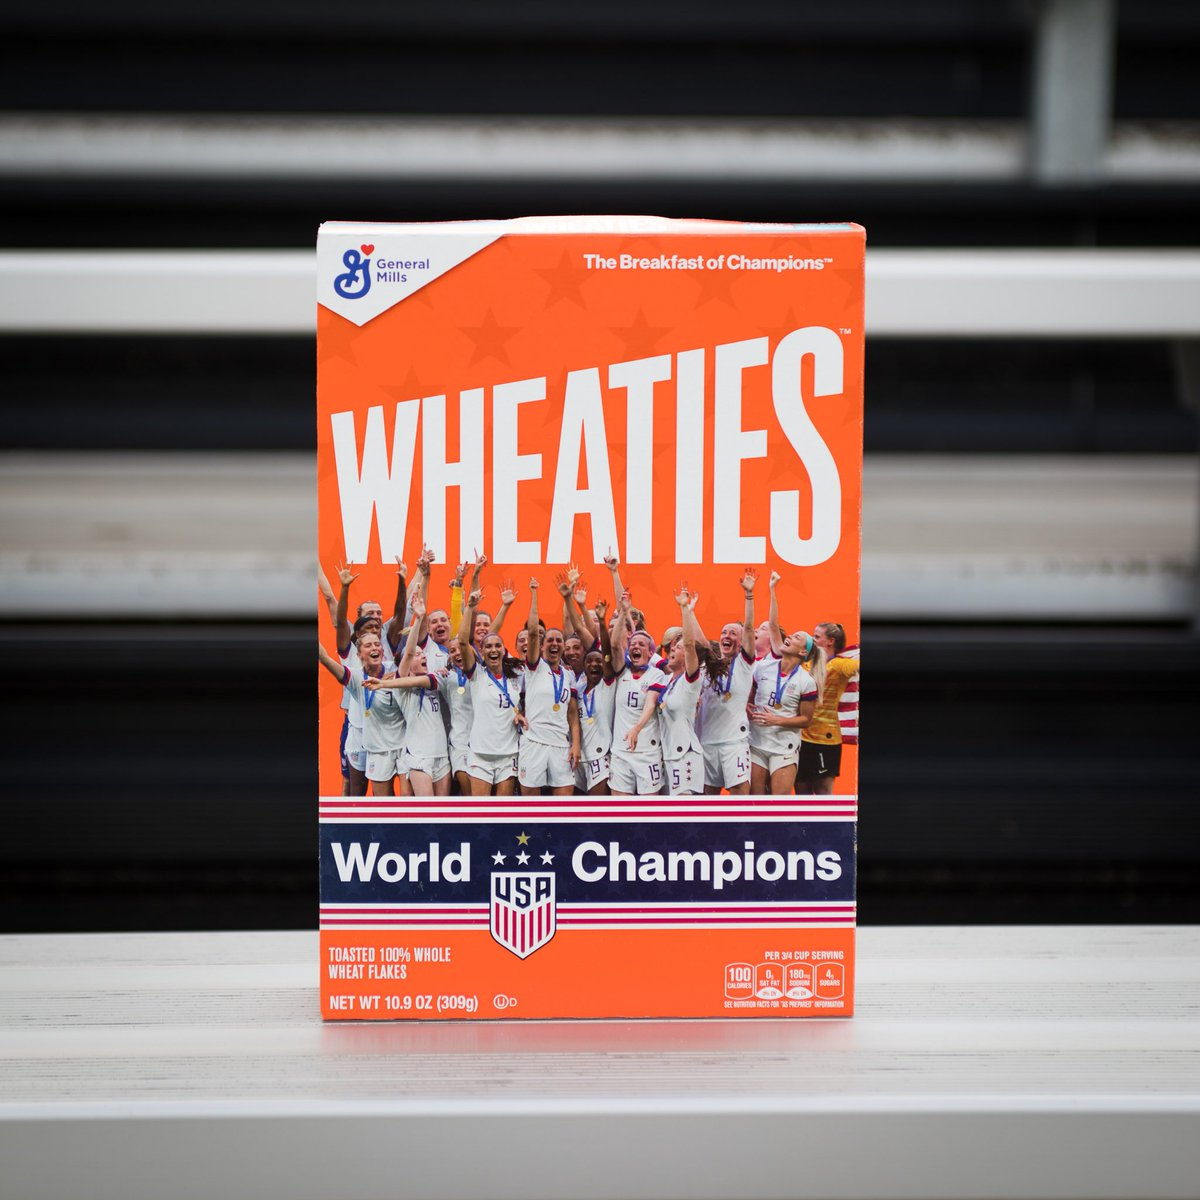 Proud that my partner @wheaties is highlighting the achievements of the US Women's National Team! You can get the limited edition boxes at wheaties.com and 100% of all sales will go to organizations supporting young females through sports.